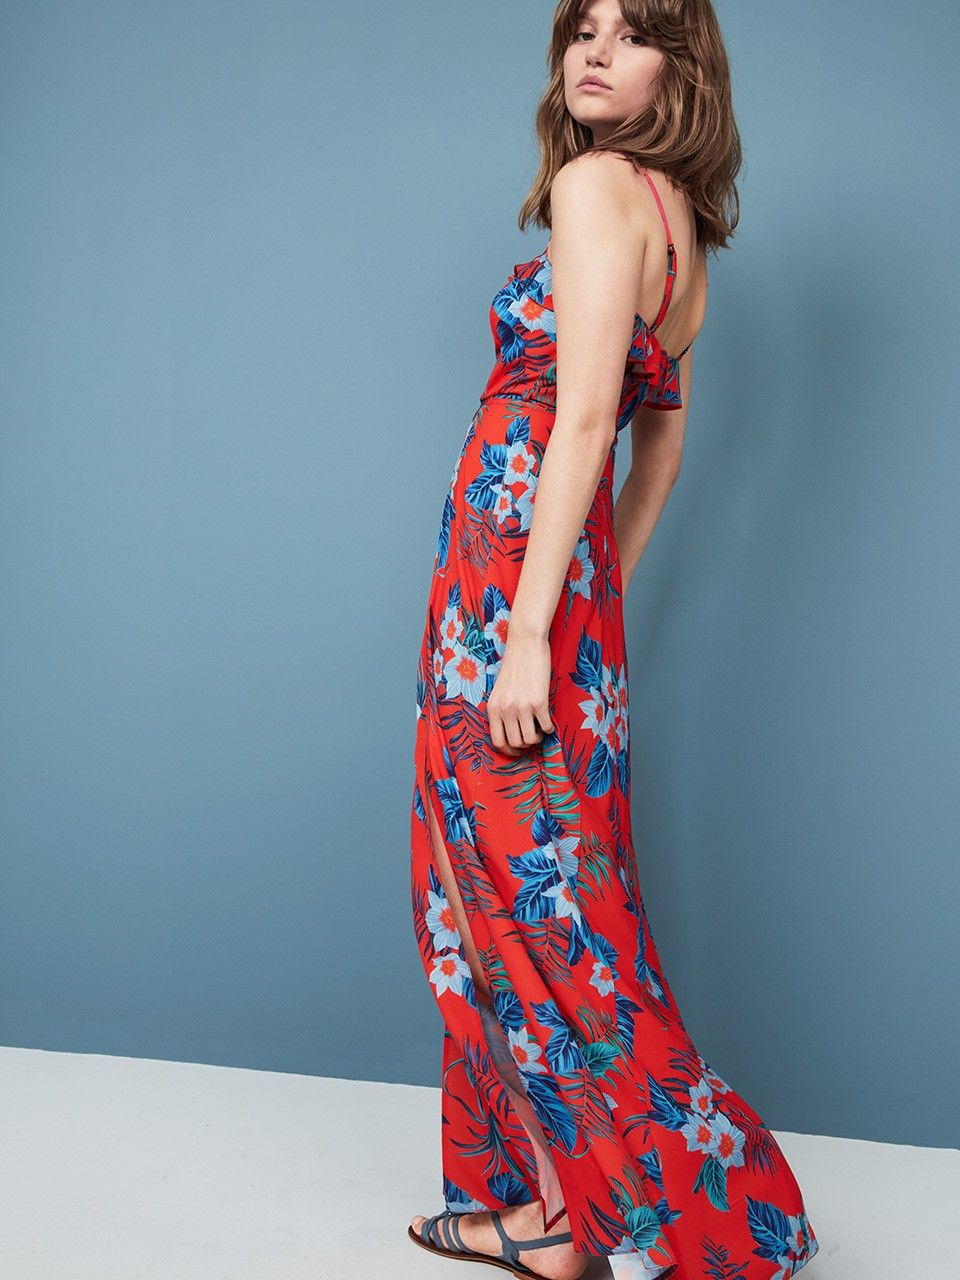 RED TROPICAL FRILL MAXI #DRESS | (D)resses | Pinterest